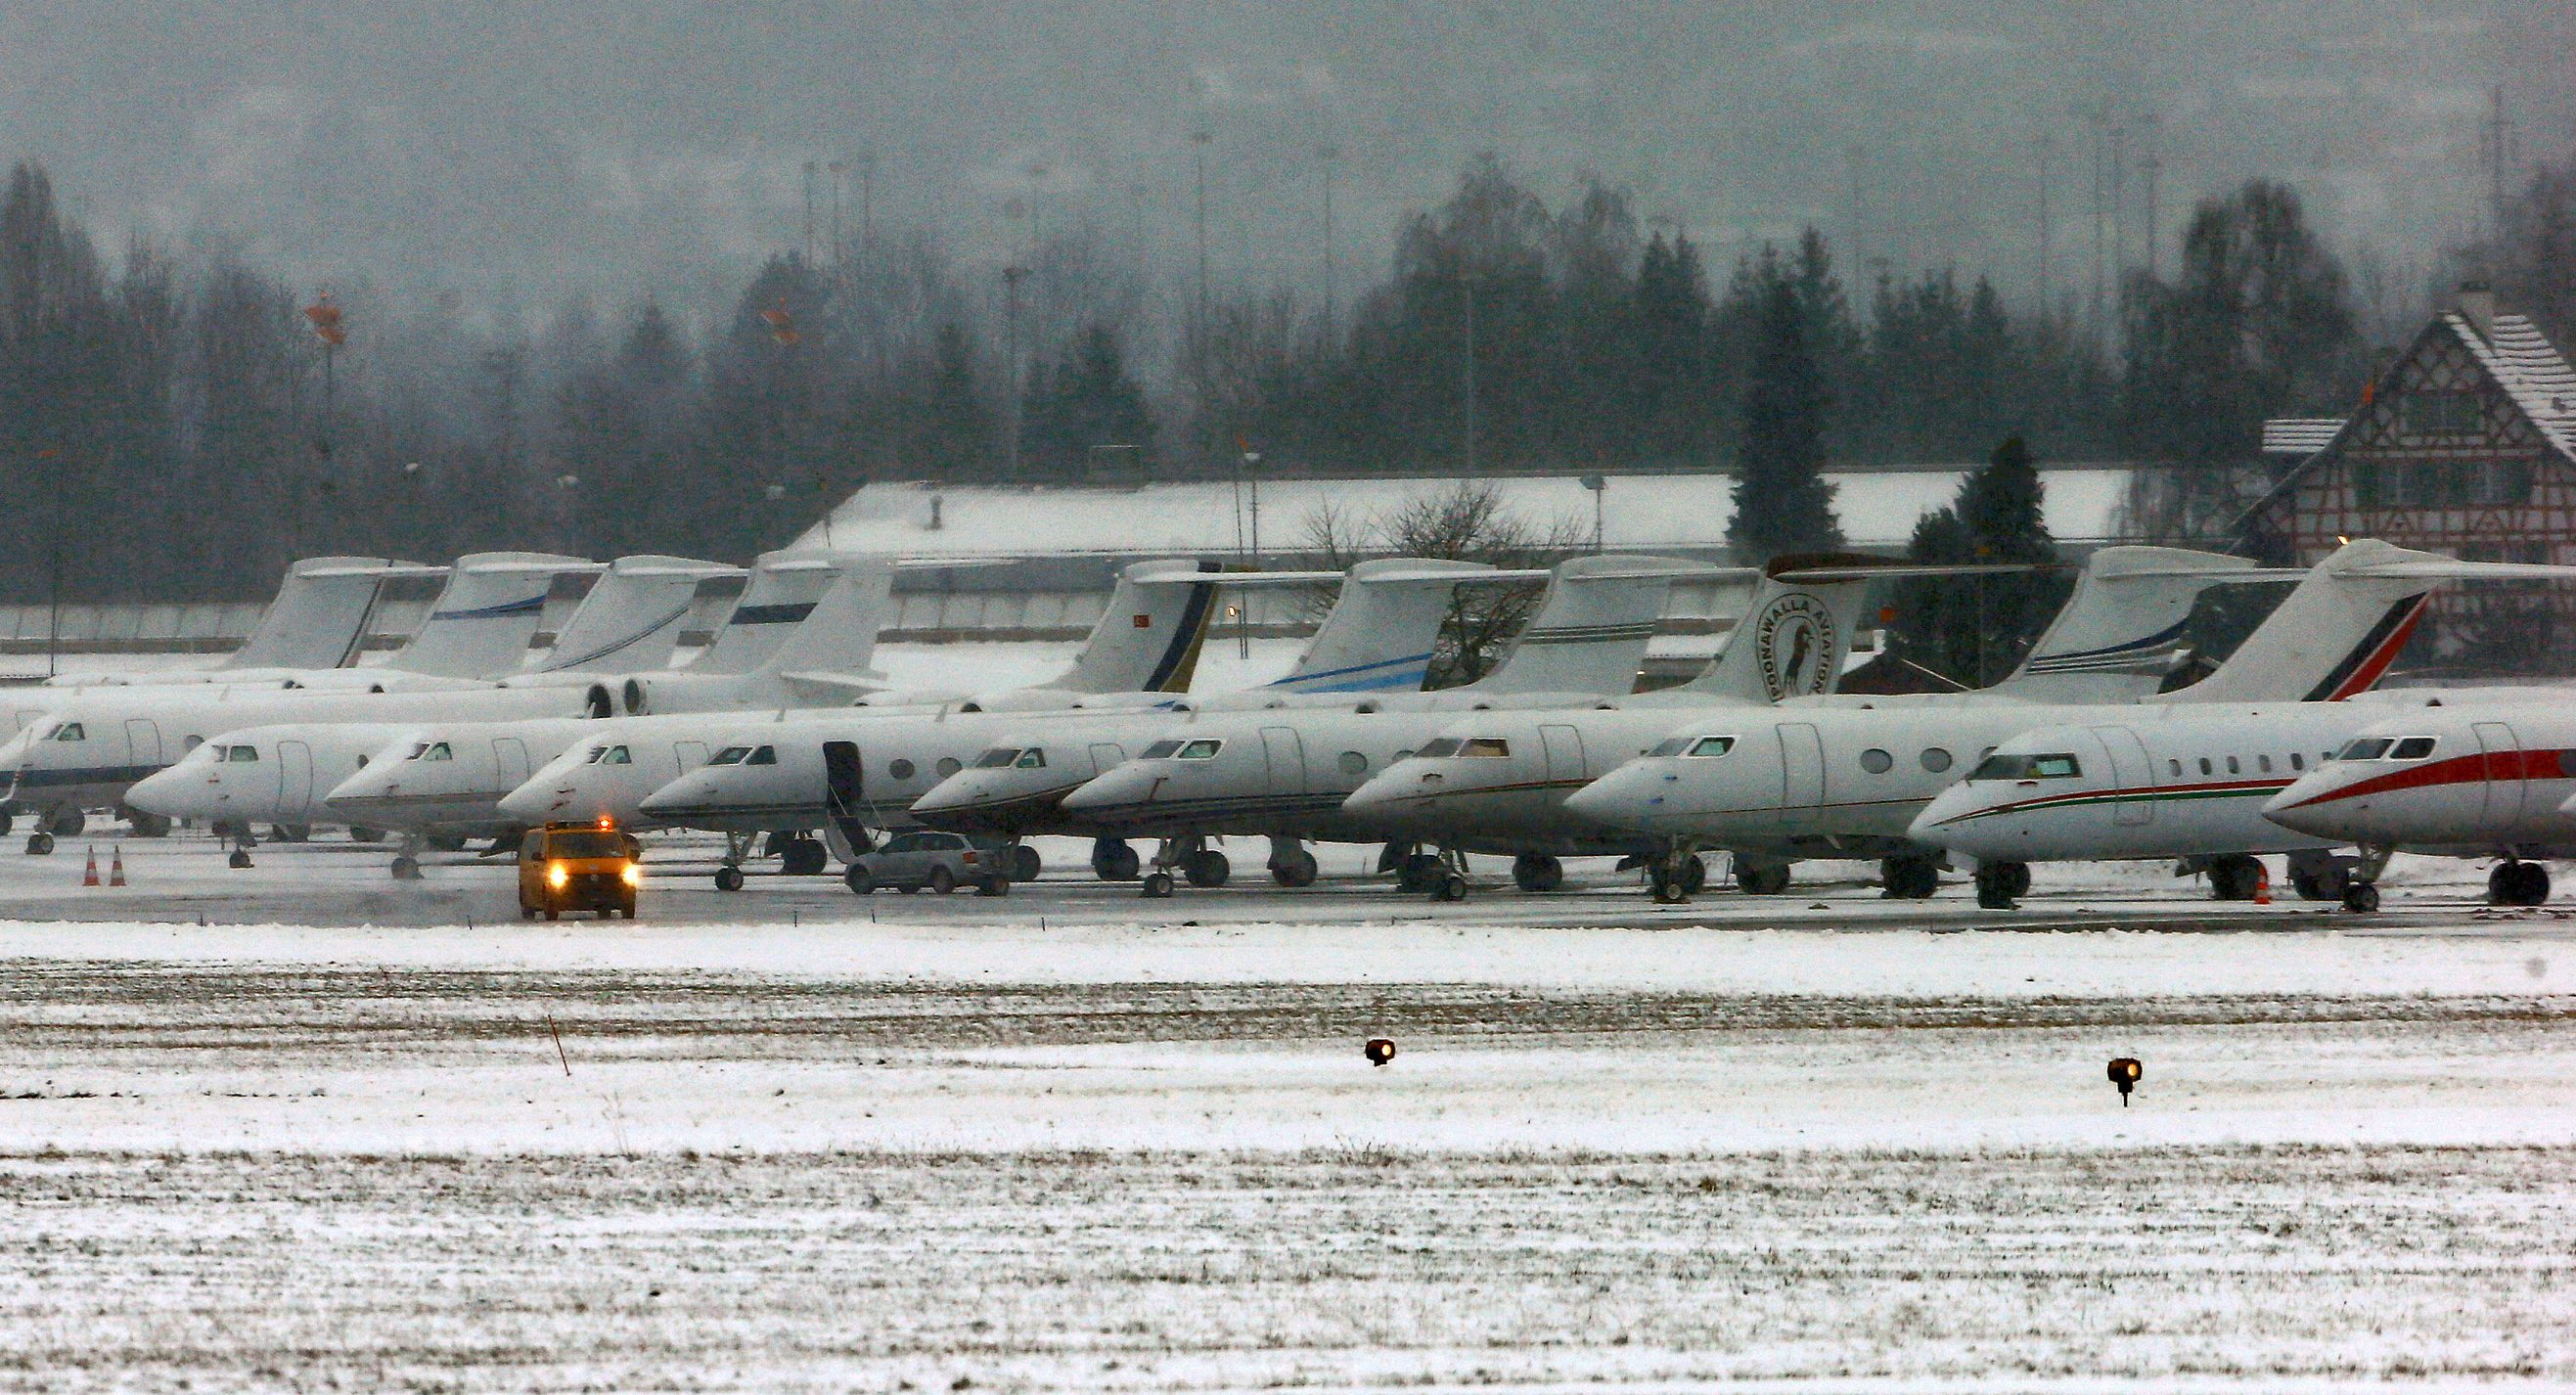 Passenger jets are parked at the Swiss Air Force base, which is used for arrivals and departures of participants of the the annual meeting of the World Economic Forum (WEF) in Davos, in Duebendorf, Switzerland January 18, 2017. REUTERS/Arnd Wiegmann - RTSW12R